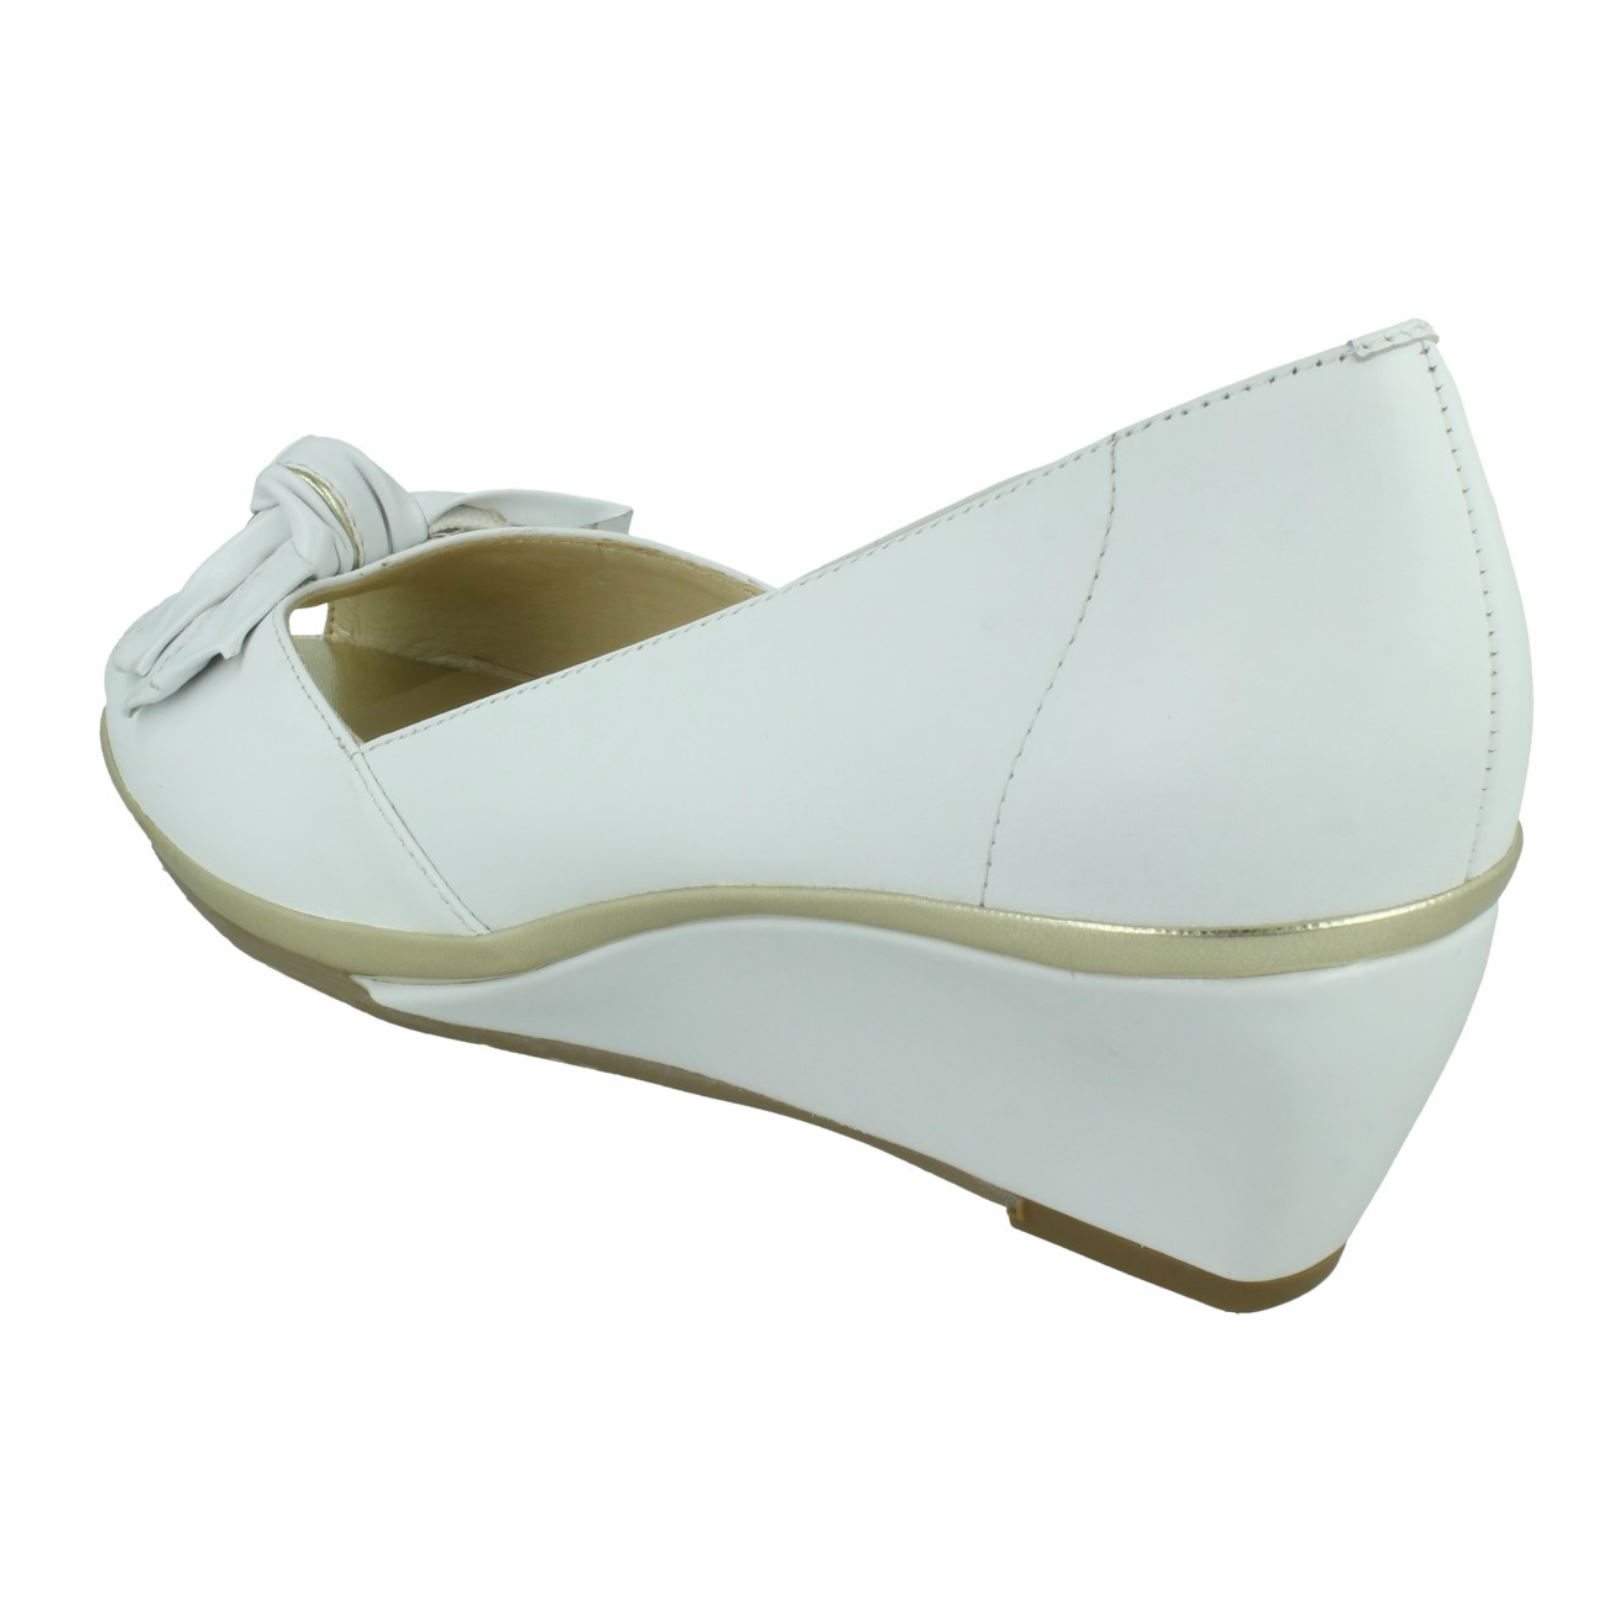 Ladies-Van-Dal-Casual-Peep-Toe-Wedges-Florida-II thumbnail 34